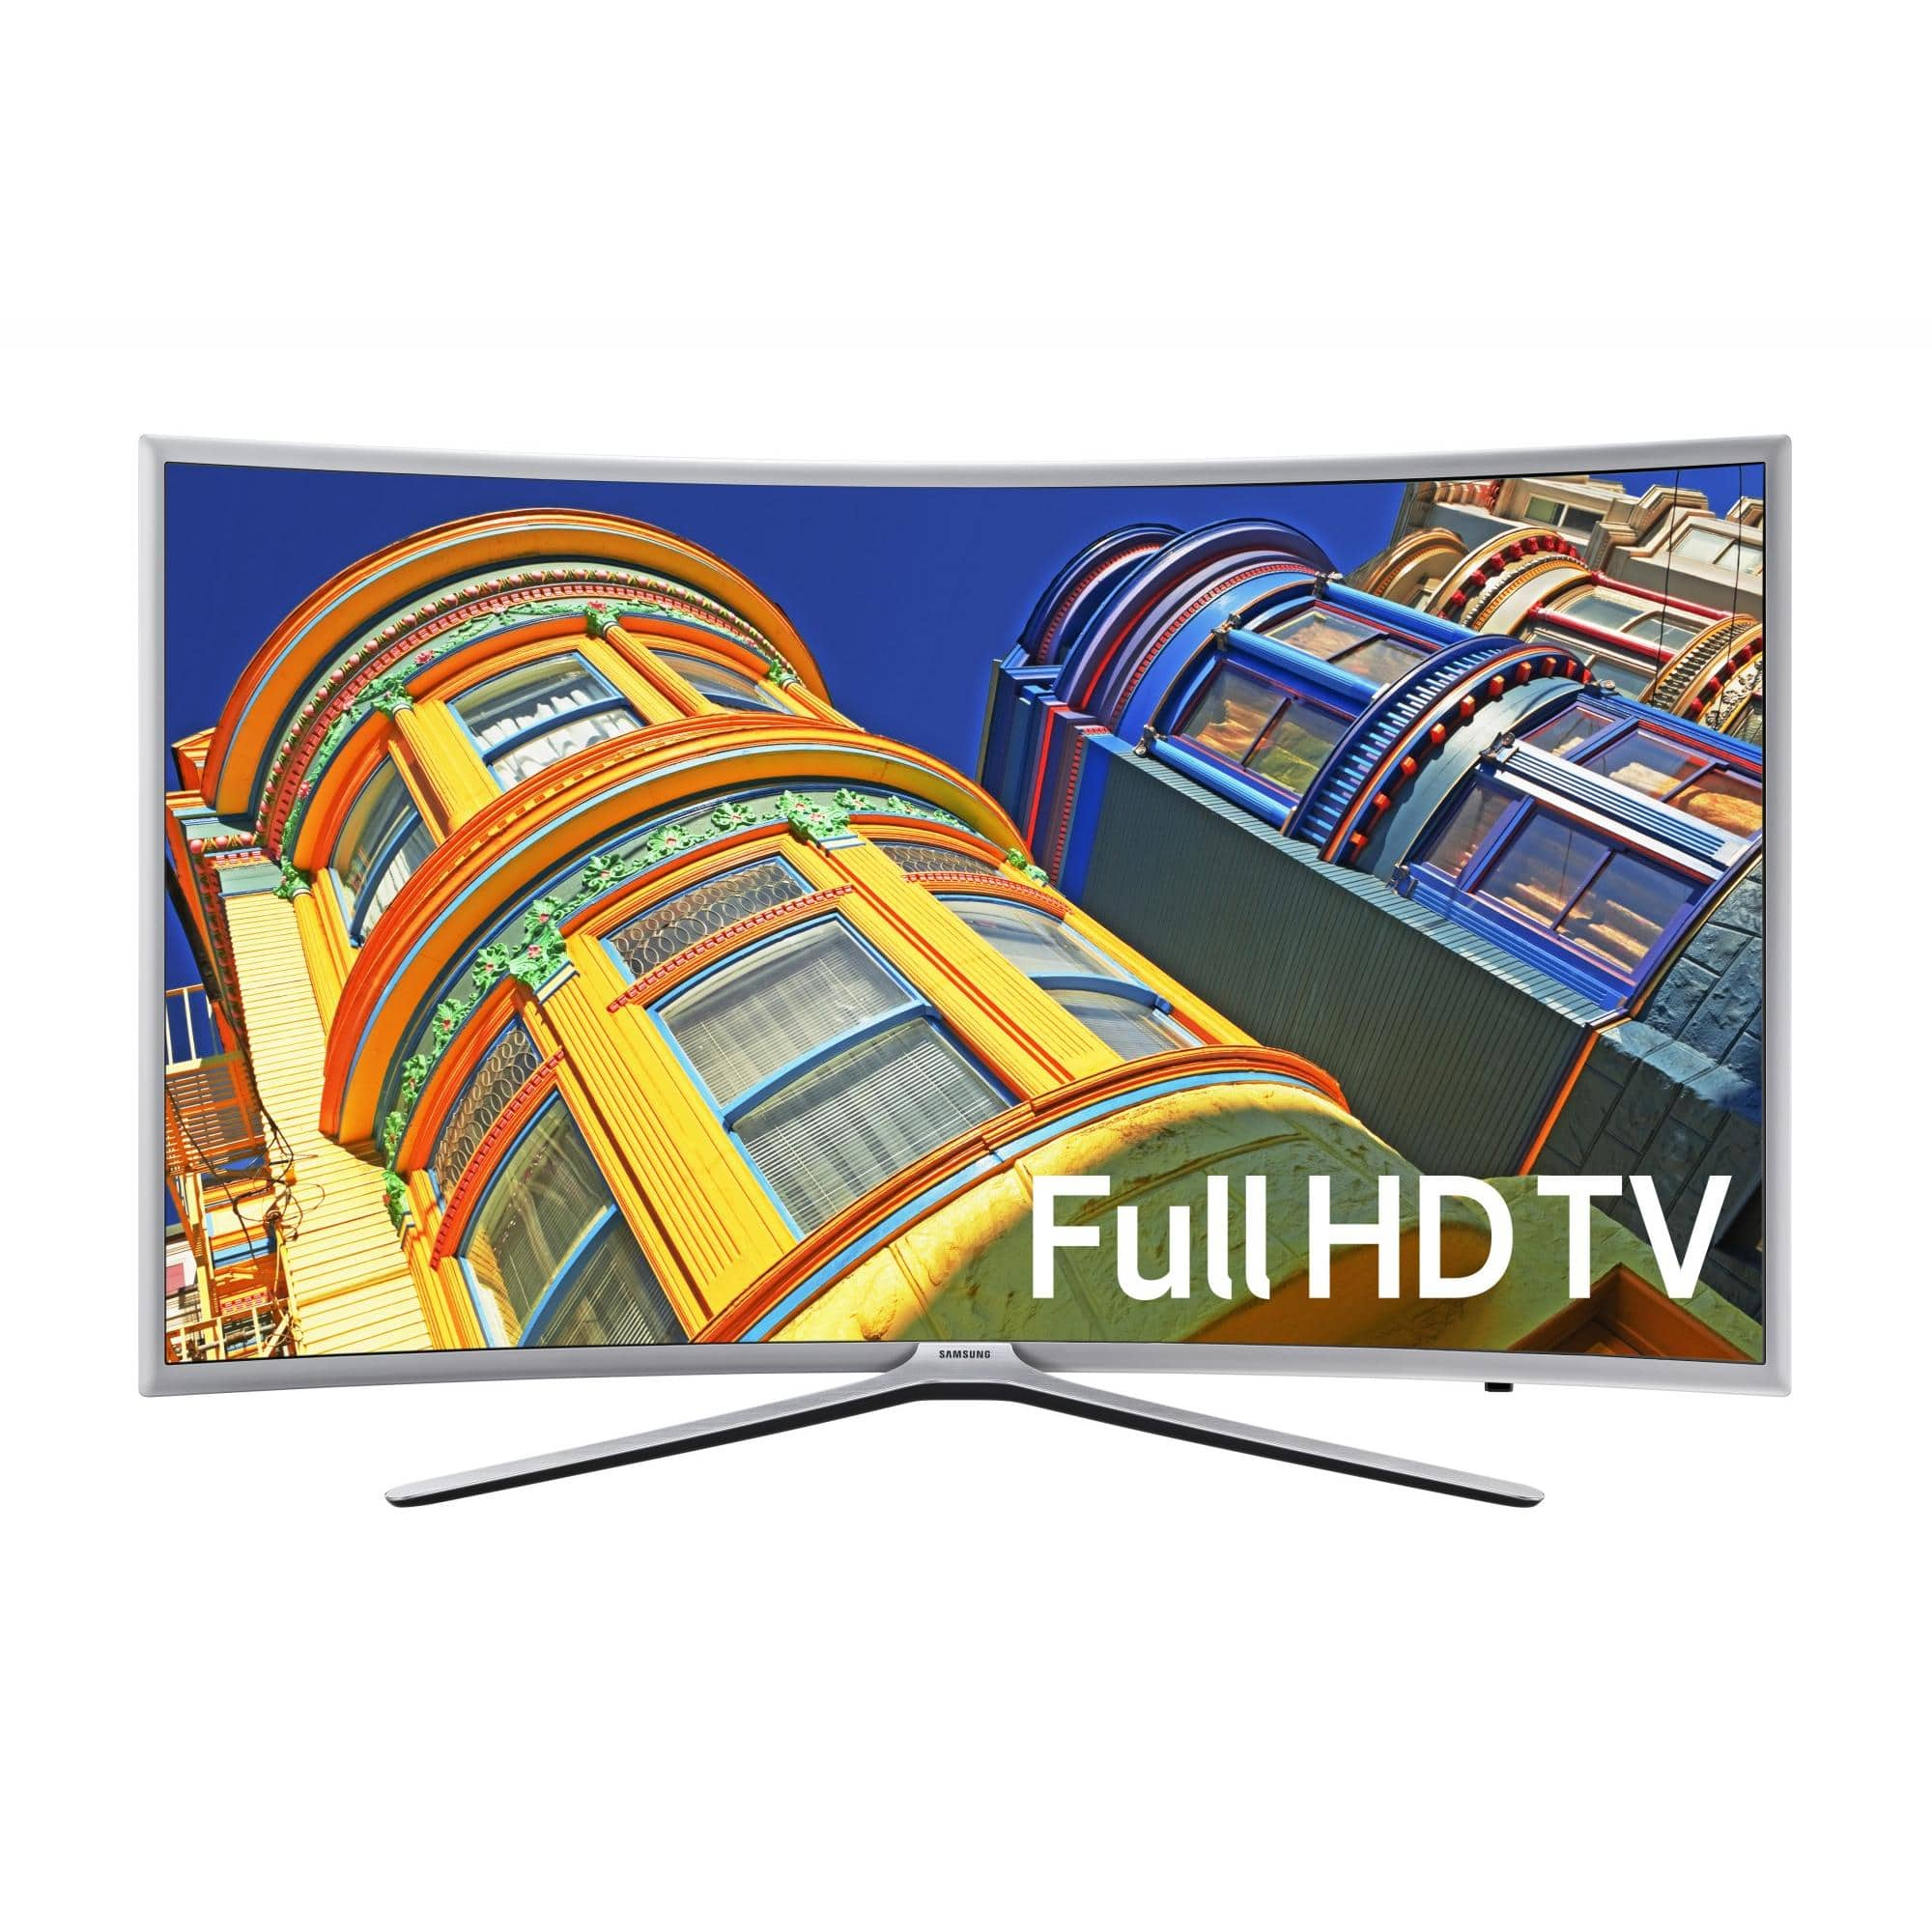 "YMMV: Walmart BM Samsung 55"" 6250 Series - Curved HD LED TV 1080p UN55K6250A $290-$349 List $1,099"